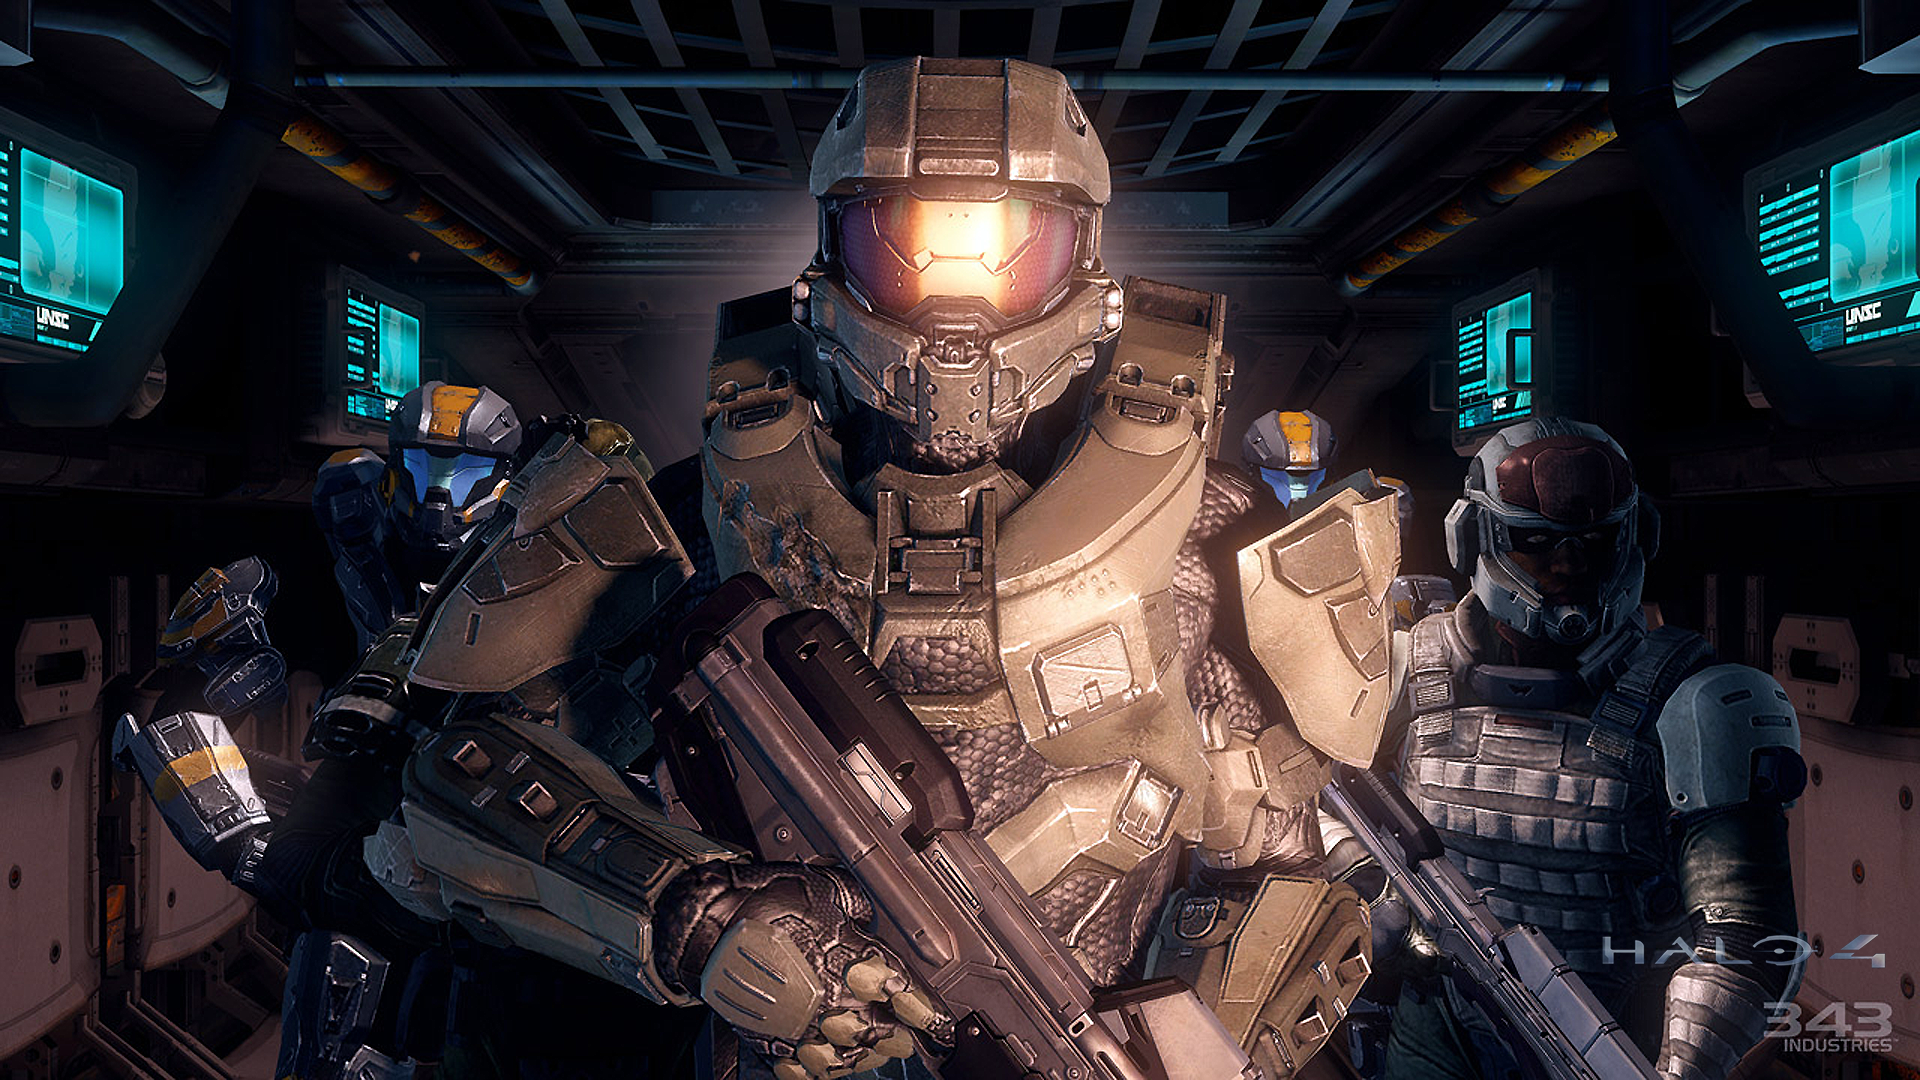 Adorable Halo 4 Wallpaper, 38742936 1920x1080 px